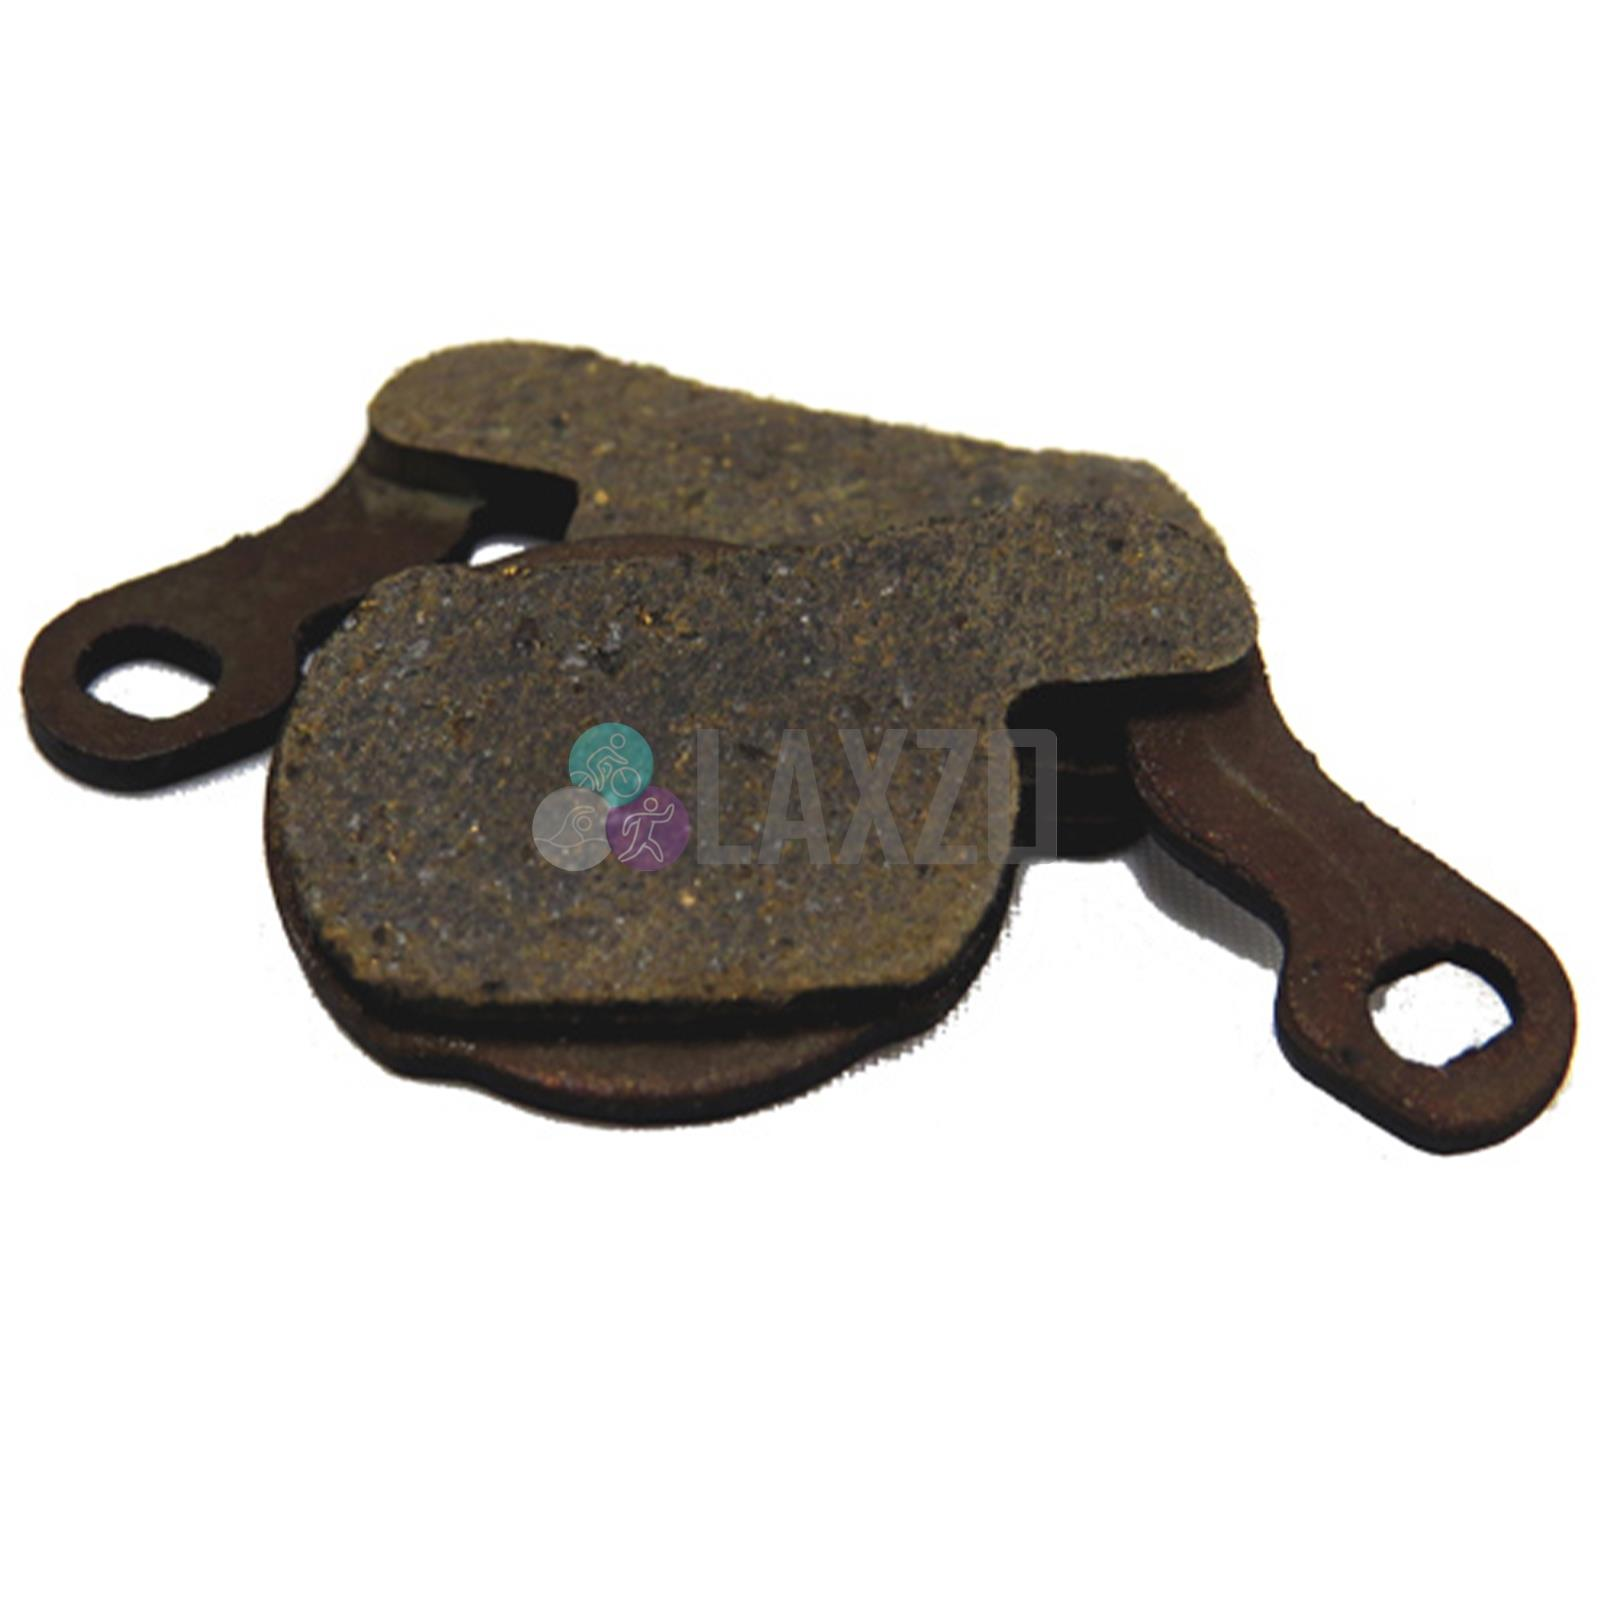 For Magura Louise Clara Brake pads Compact Black Replacement Accessories Parts